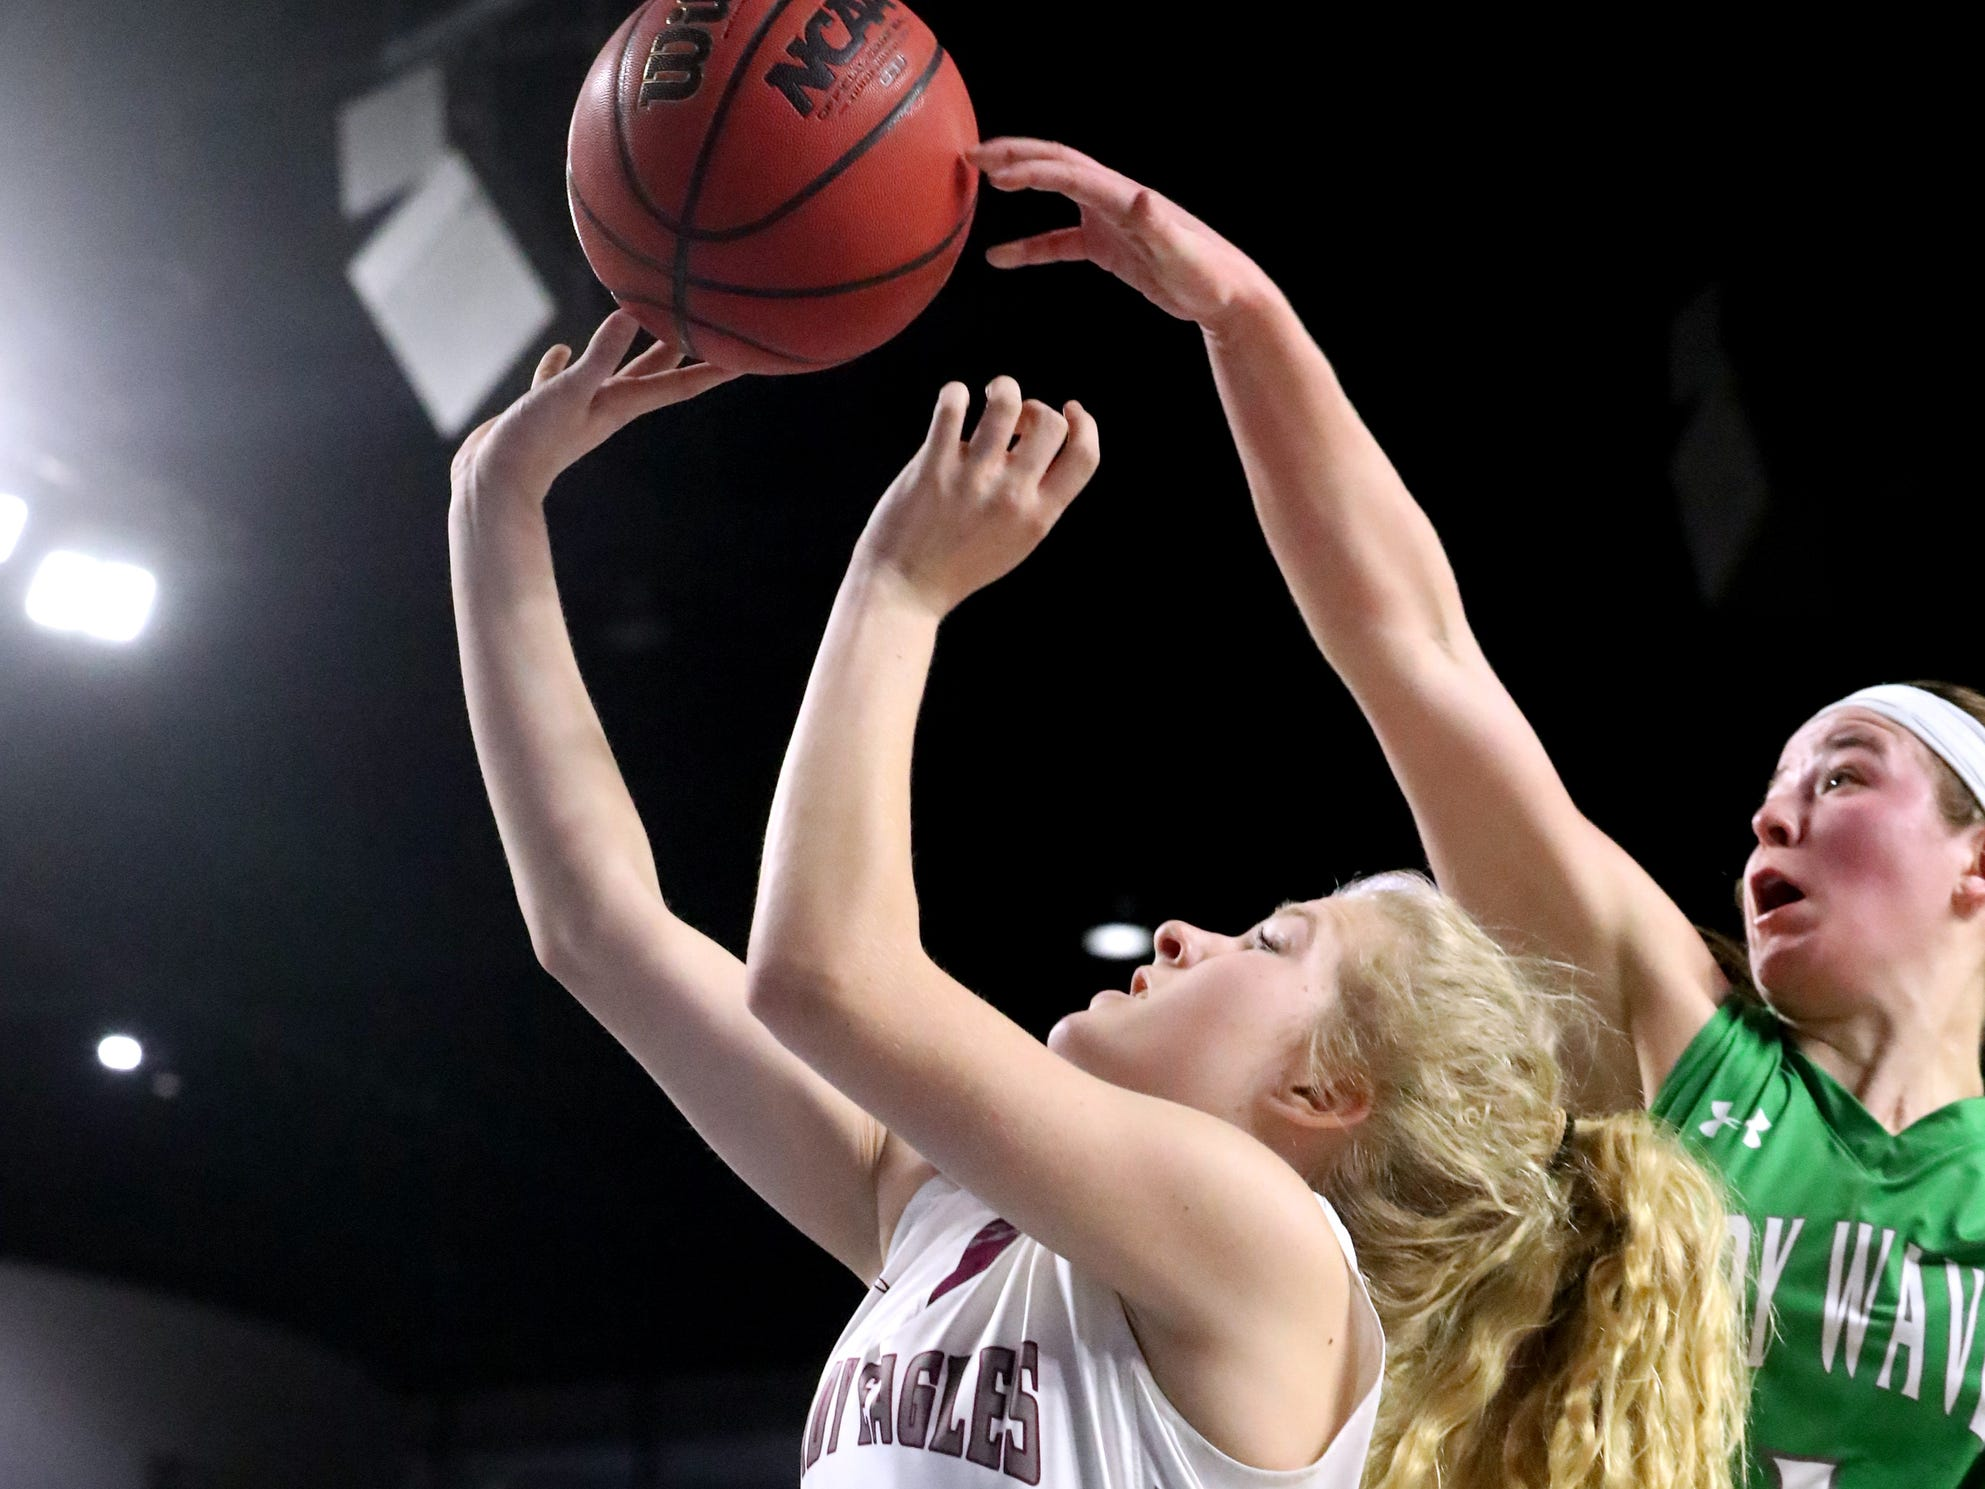 during the quarterfinal round of the TSSAA Div. 1 Class A Girls State Tournament, on Thursday, March 7, 2019, at Murphy Center in Murfreesboro, Tenn.